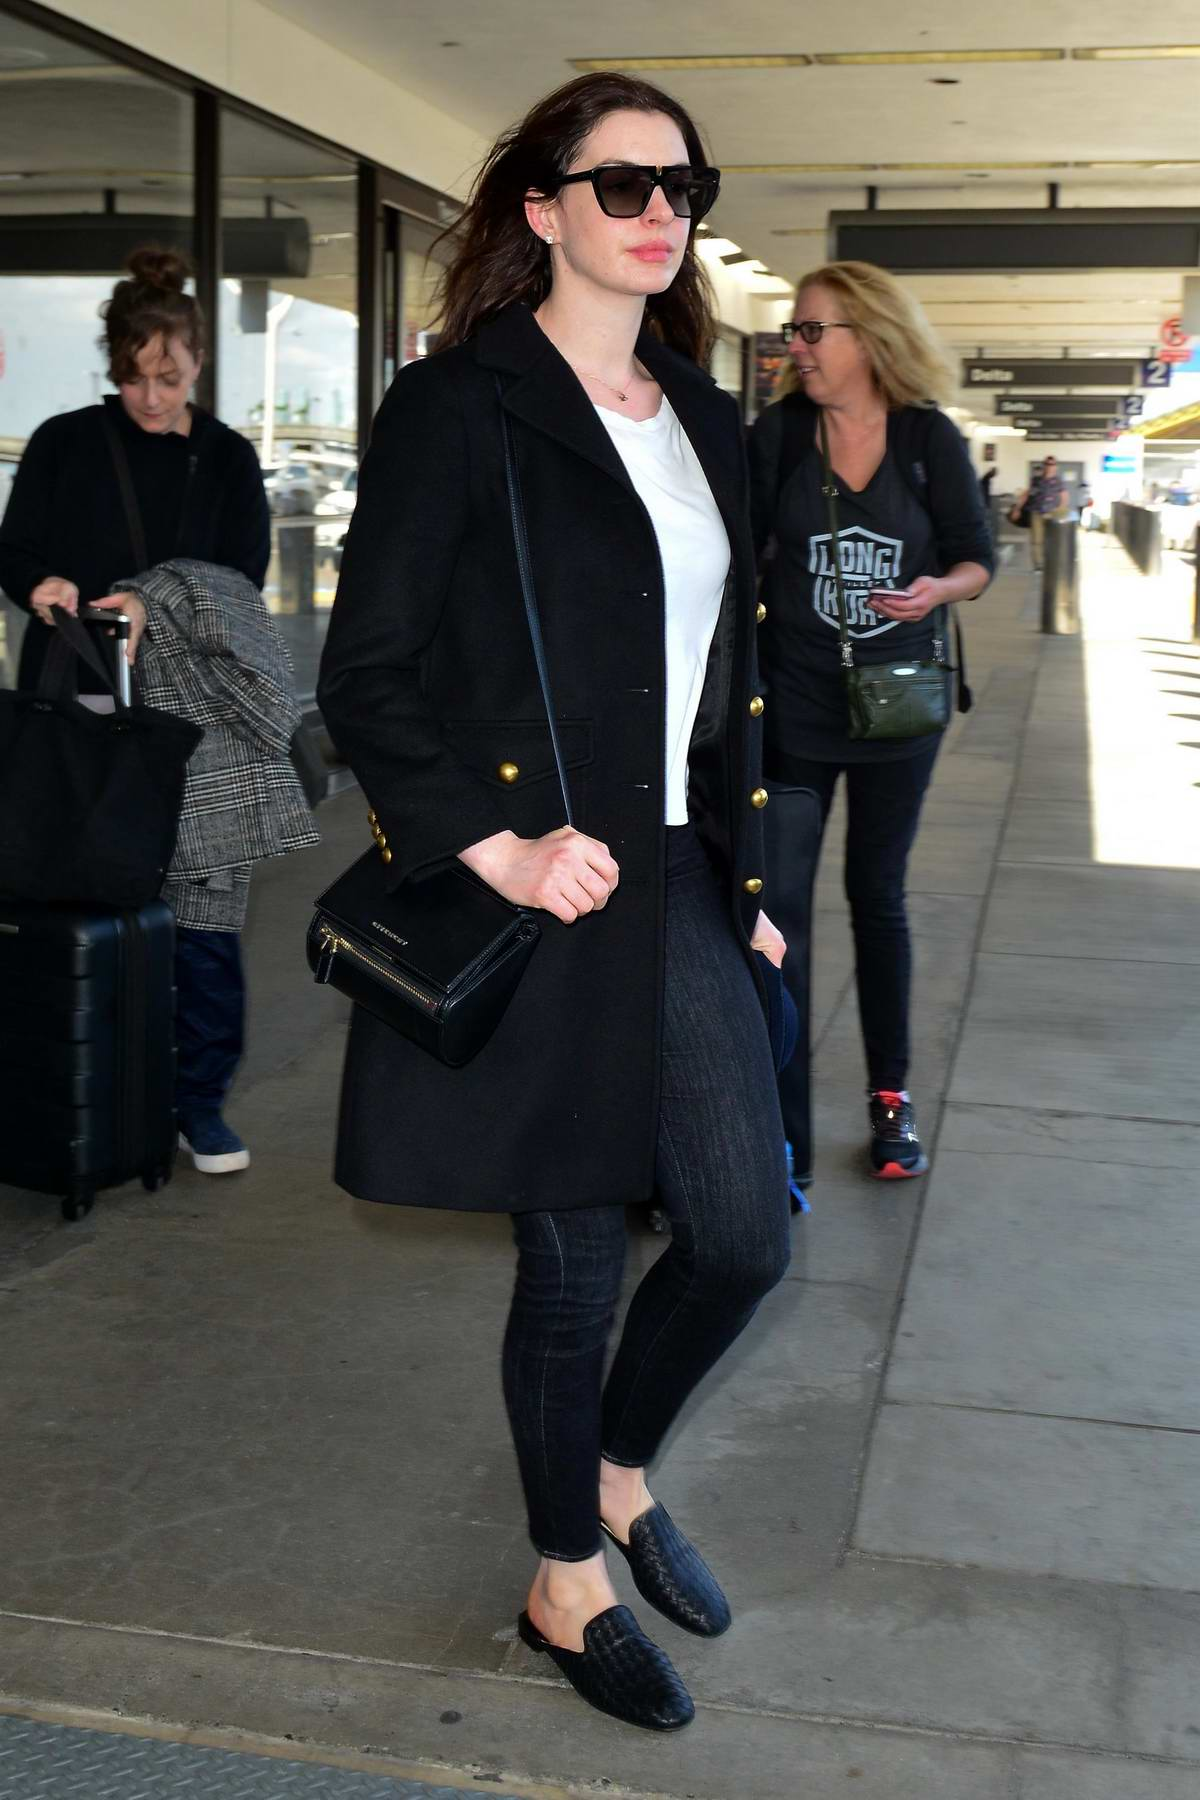 Anne Hathaway looks stunning as she makes her way through the LAX airport in Los Angeles